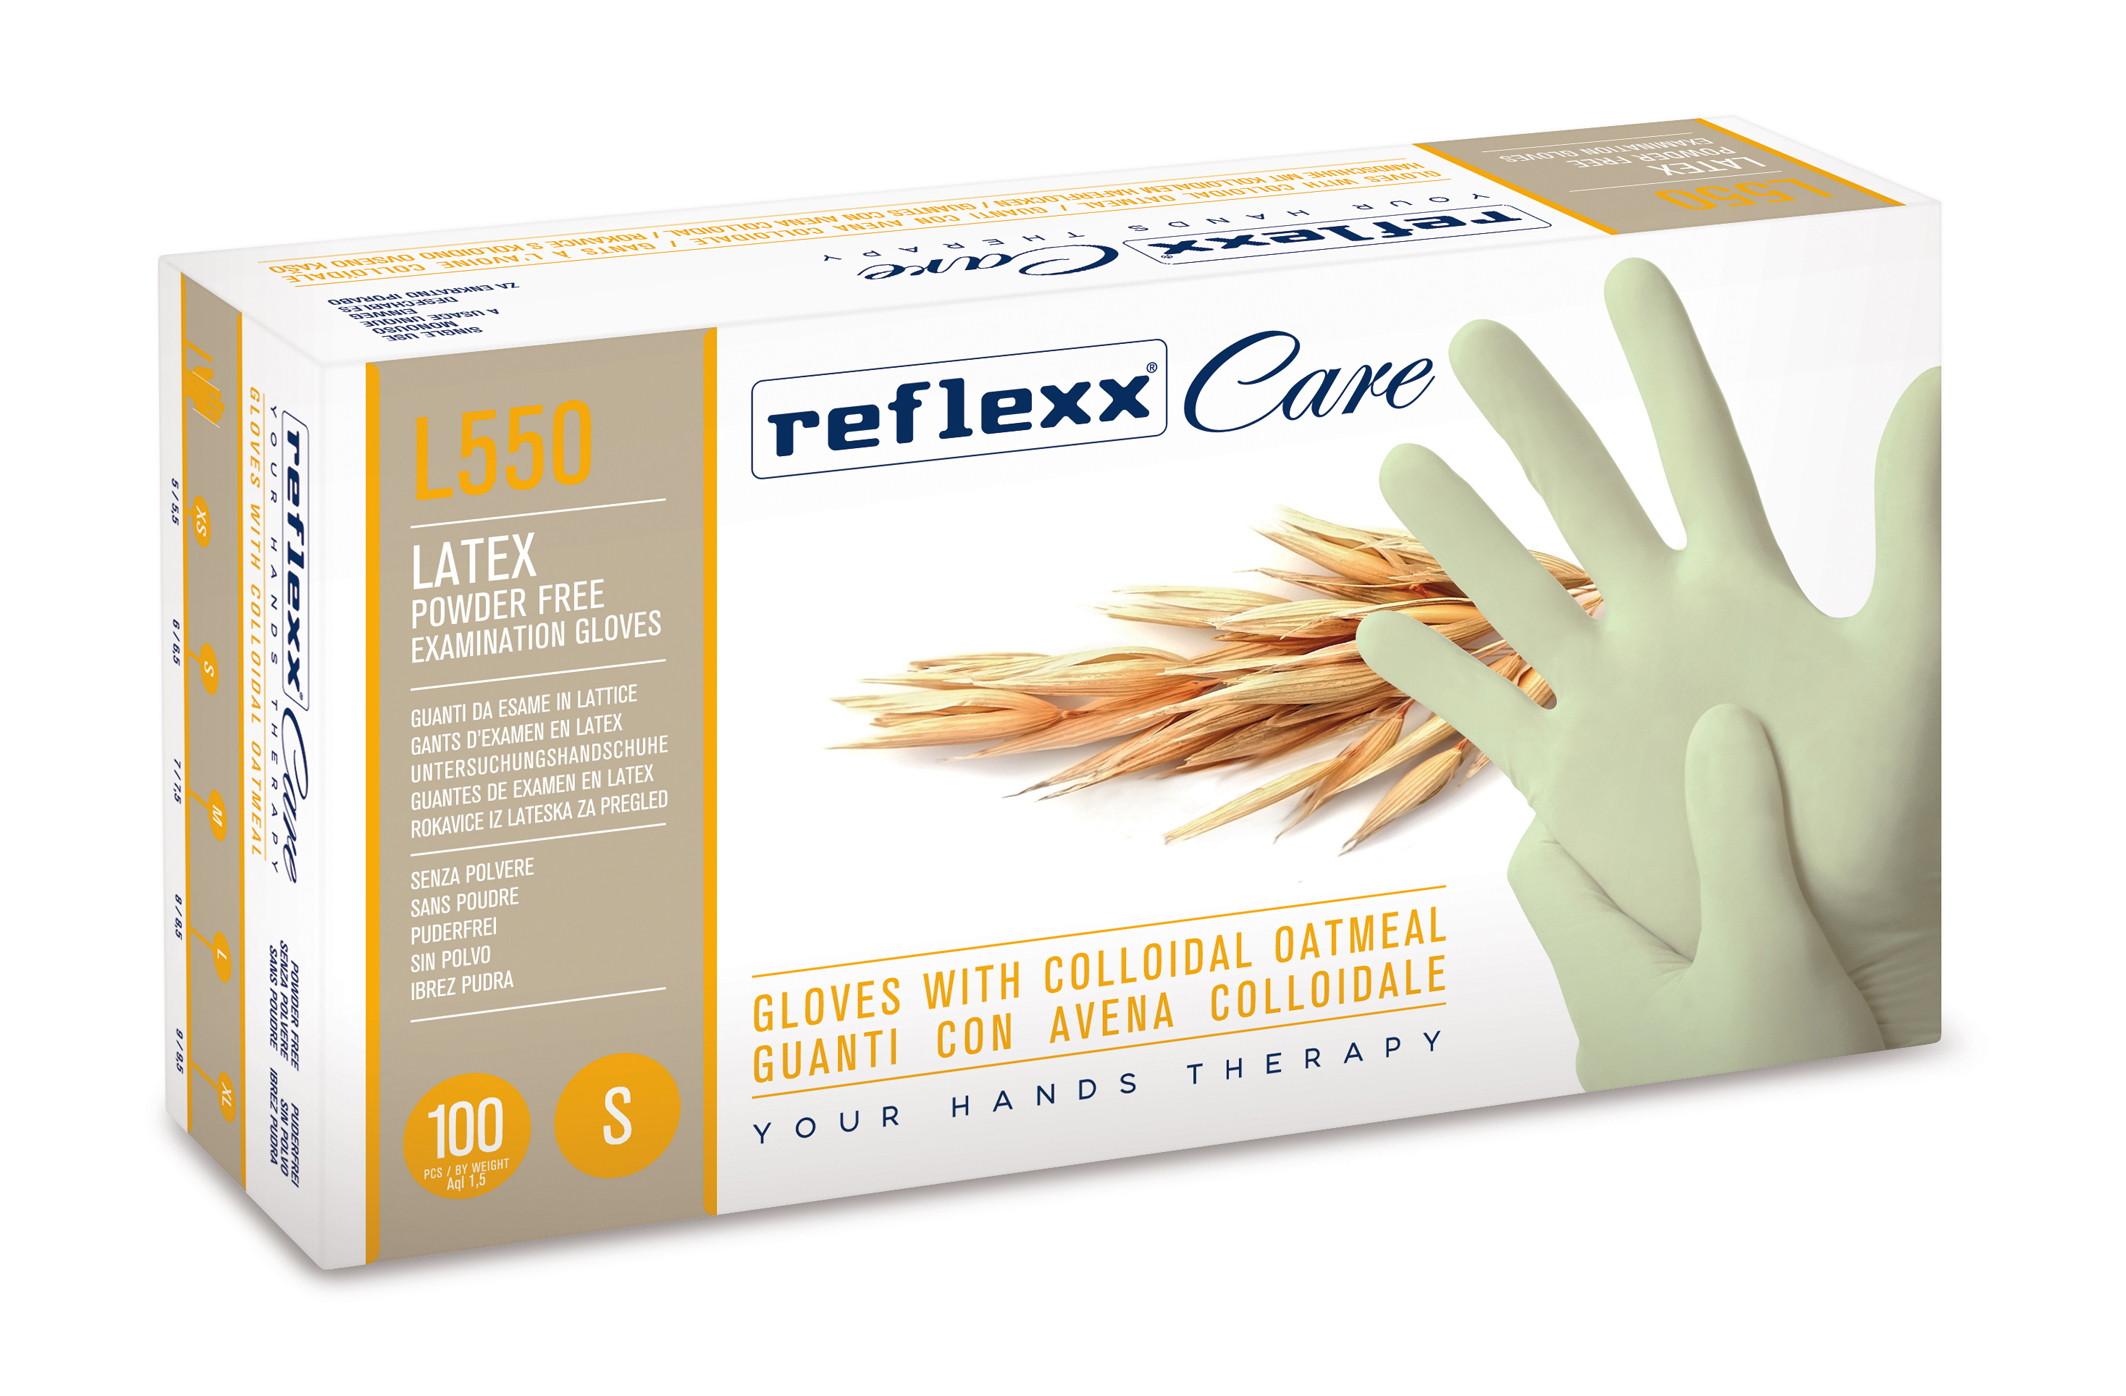 Latex gloves with oatmeal powder